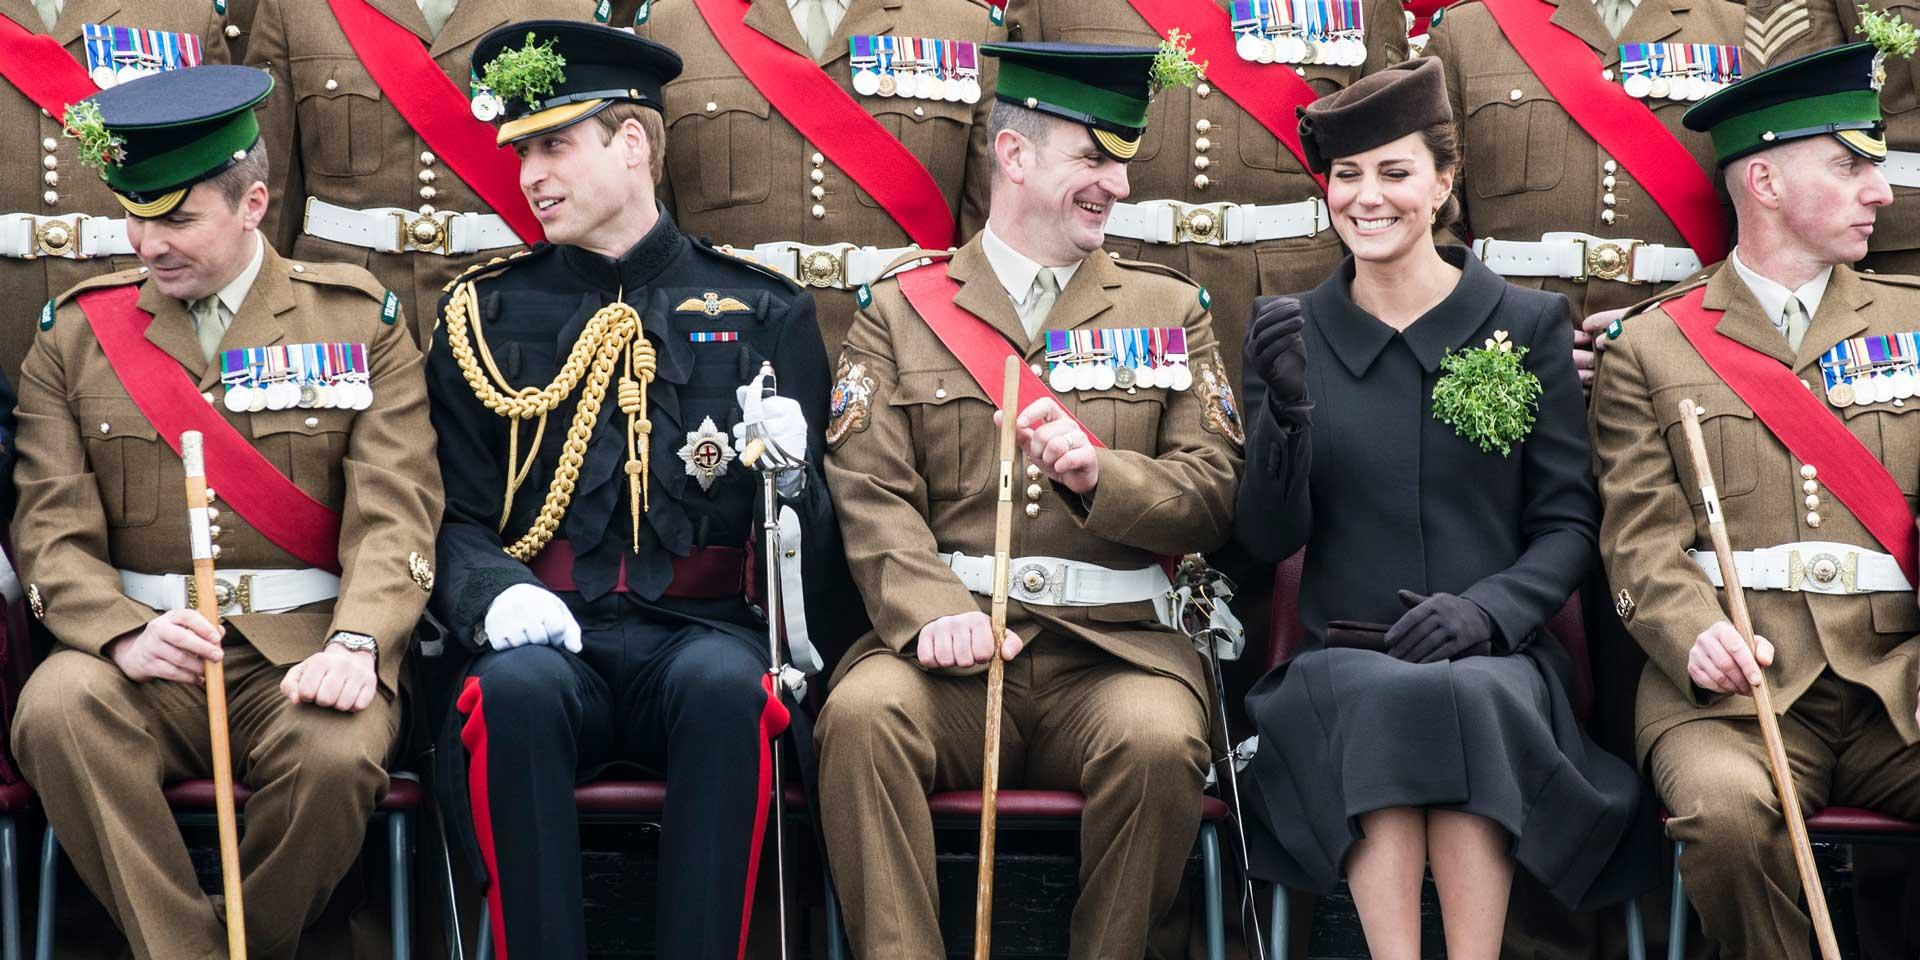 The Duke and Duchess of Cambridge with the Irish Guards, St Patrick's Day, Aldershot, 17 March 2015